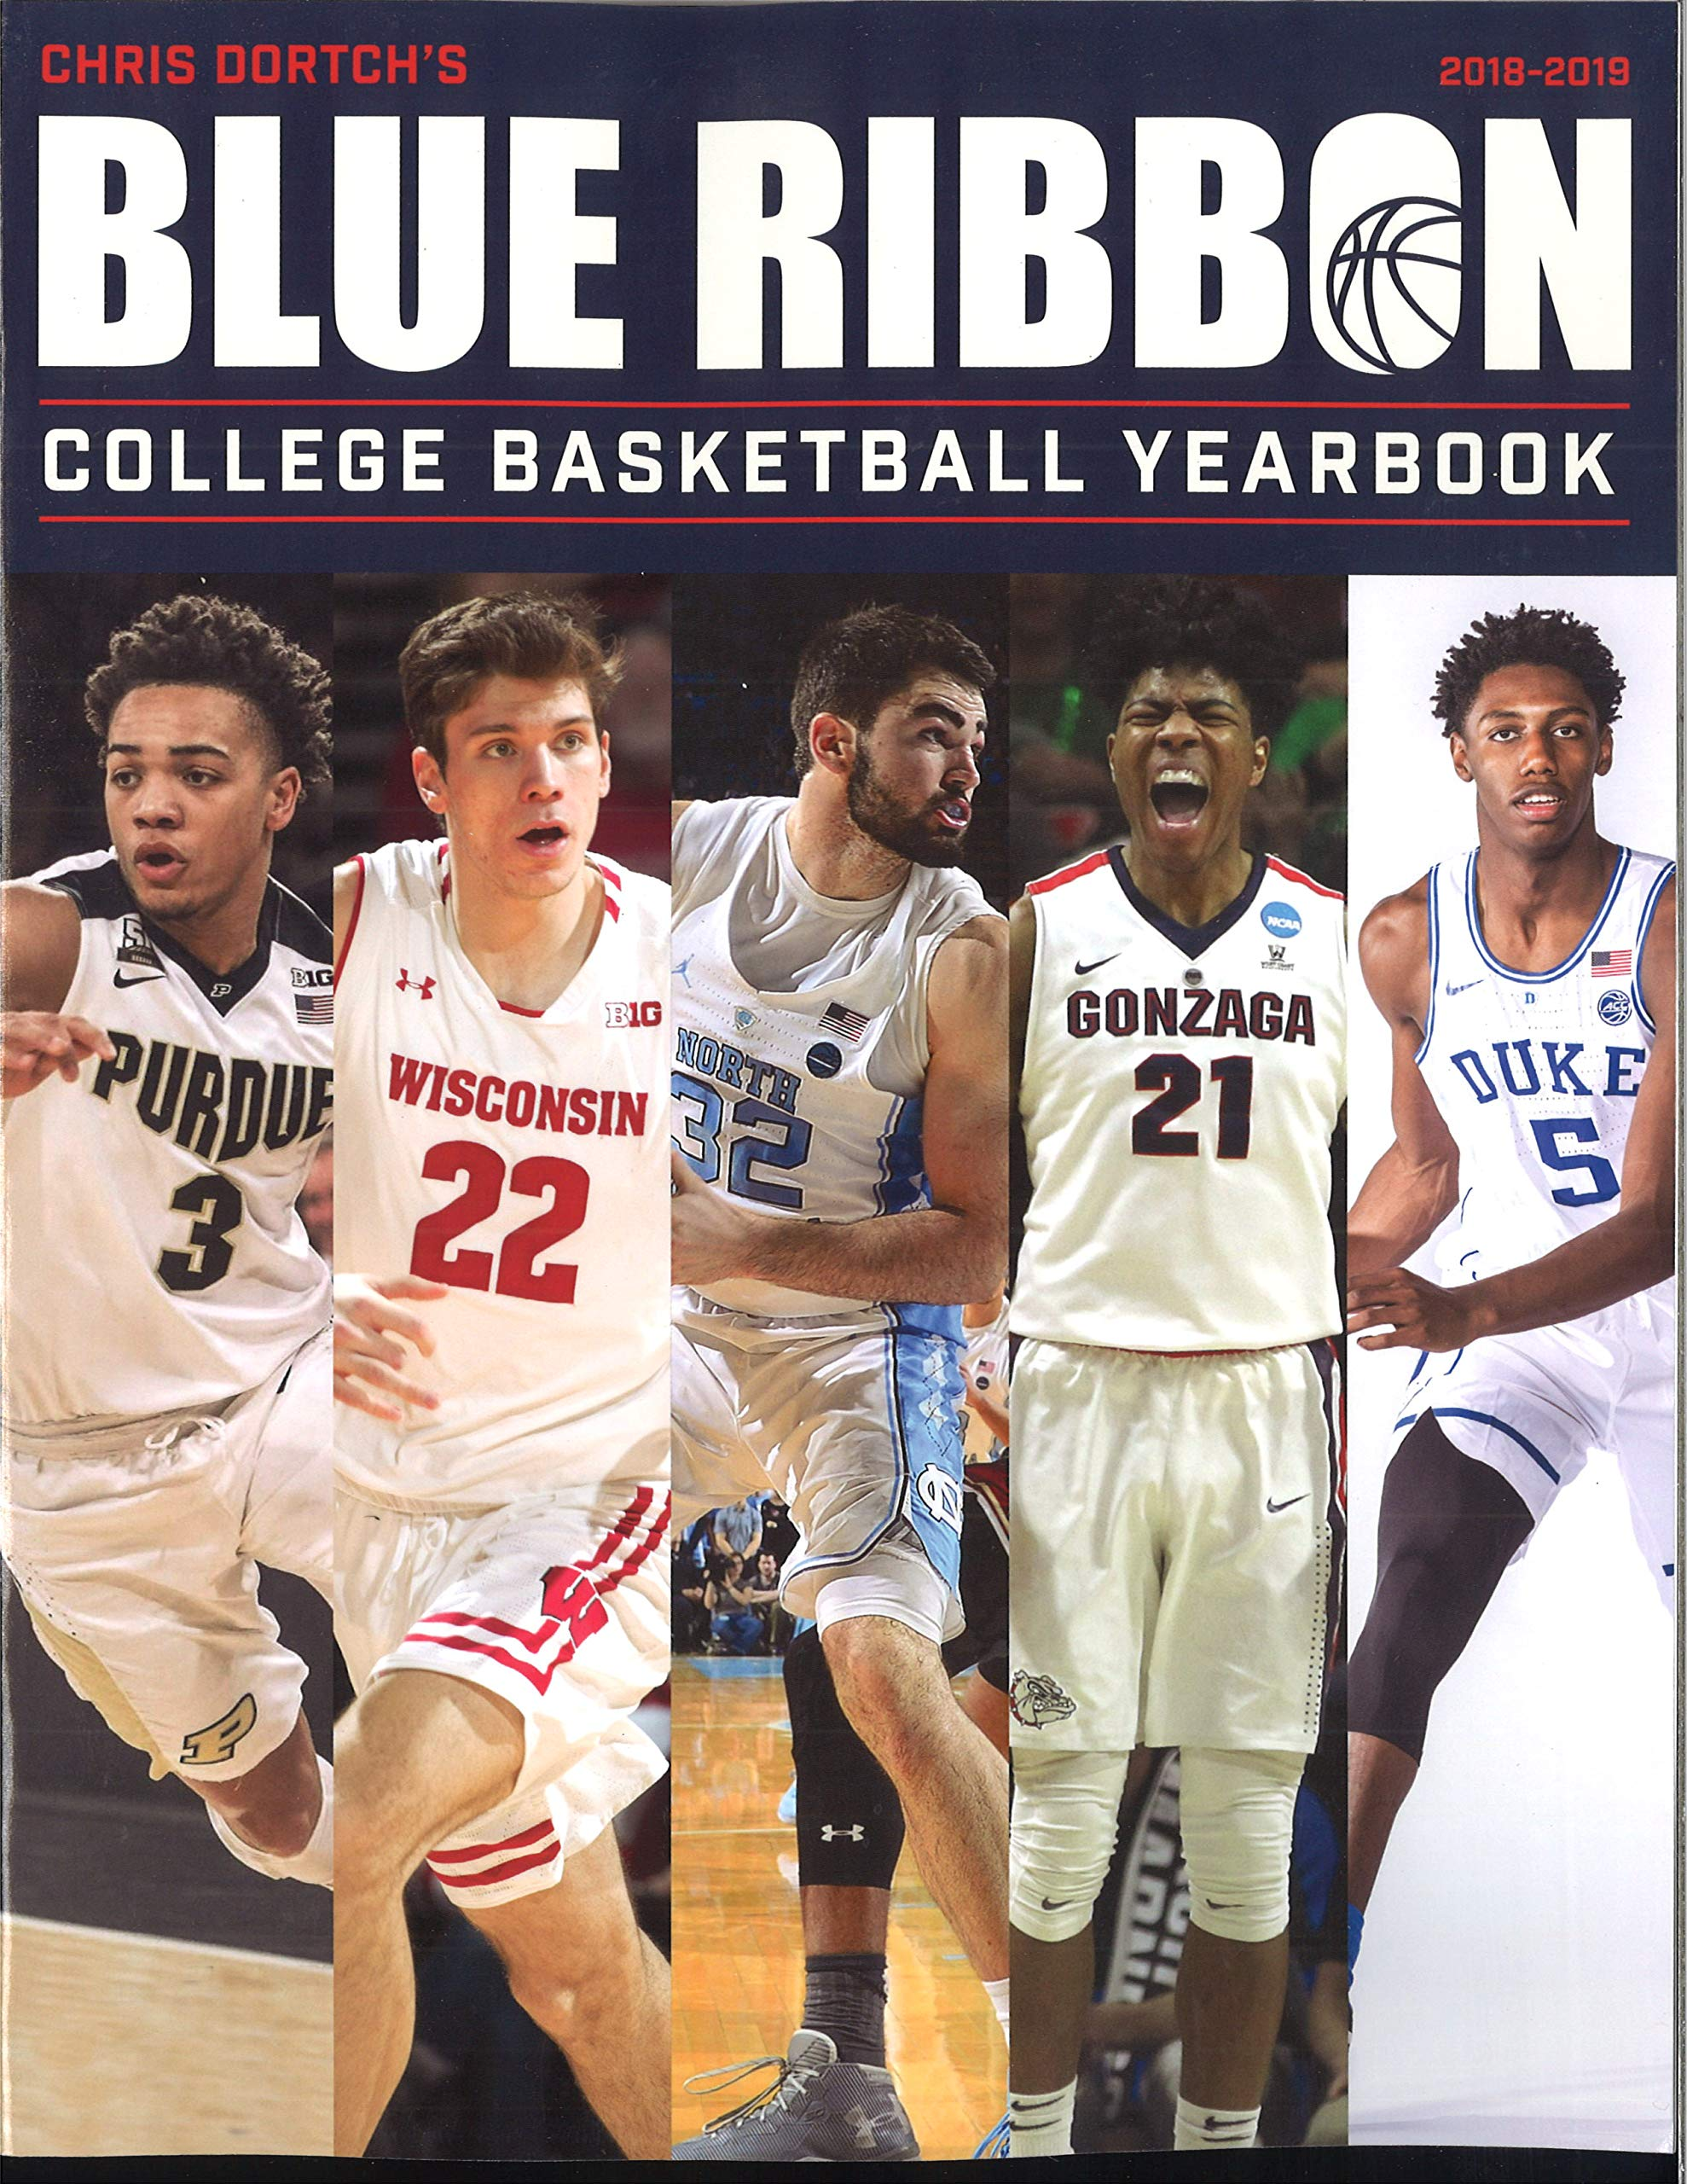 2018 2019 Blue Ribbon College Basketball Yearbook Chris Dortch